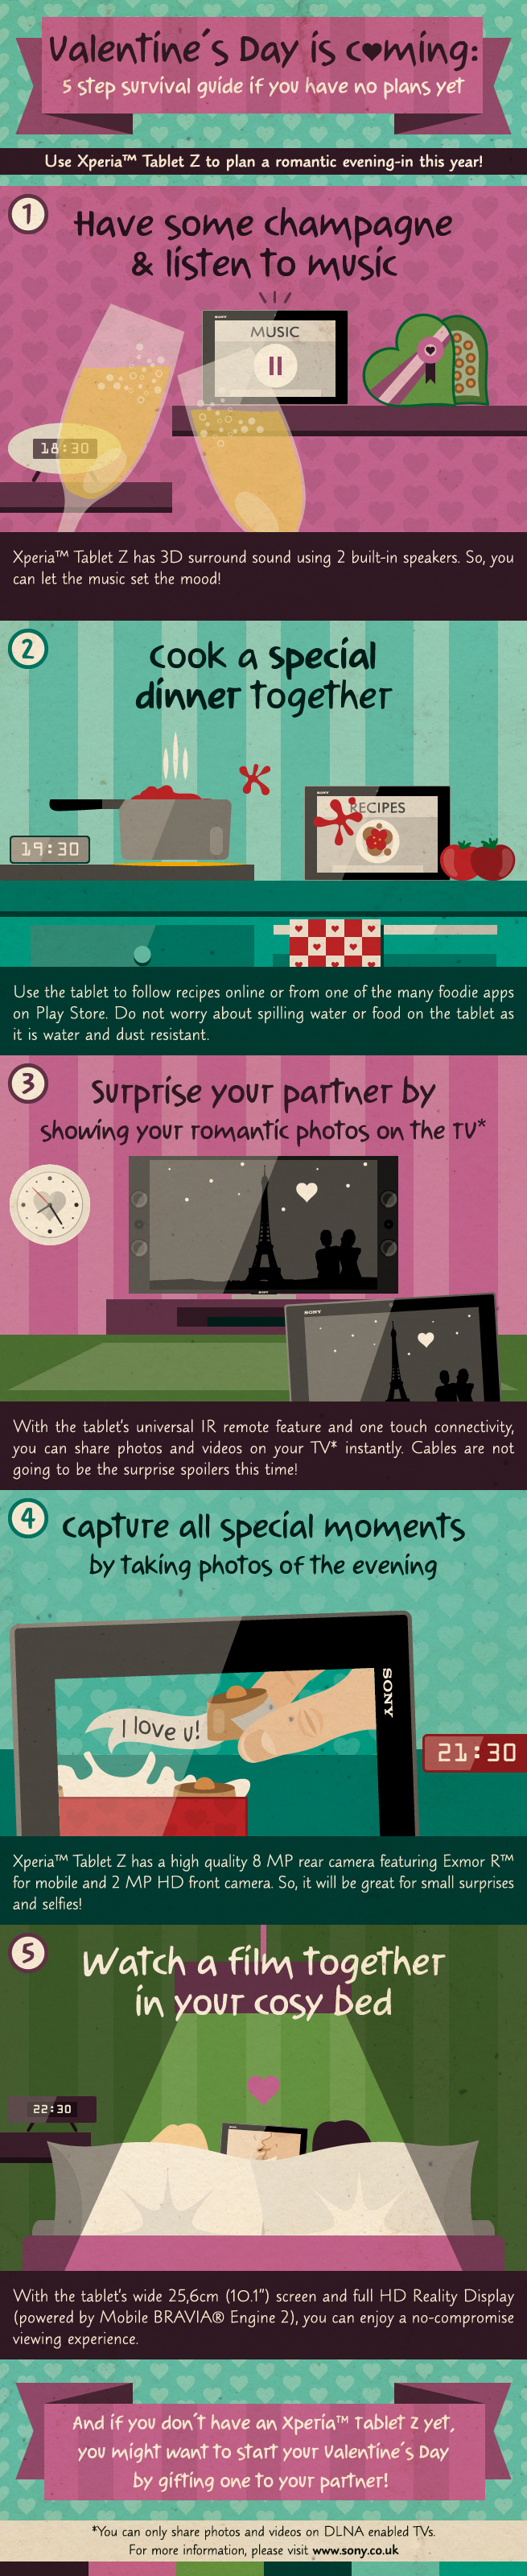 Valentine's Day survival guide - Infographic